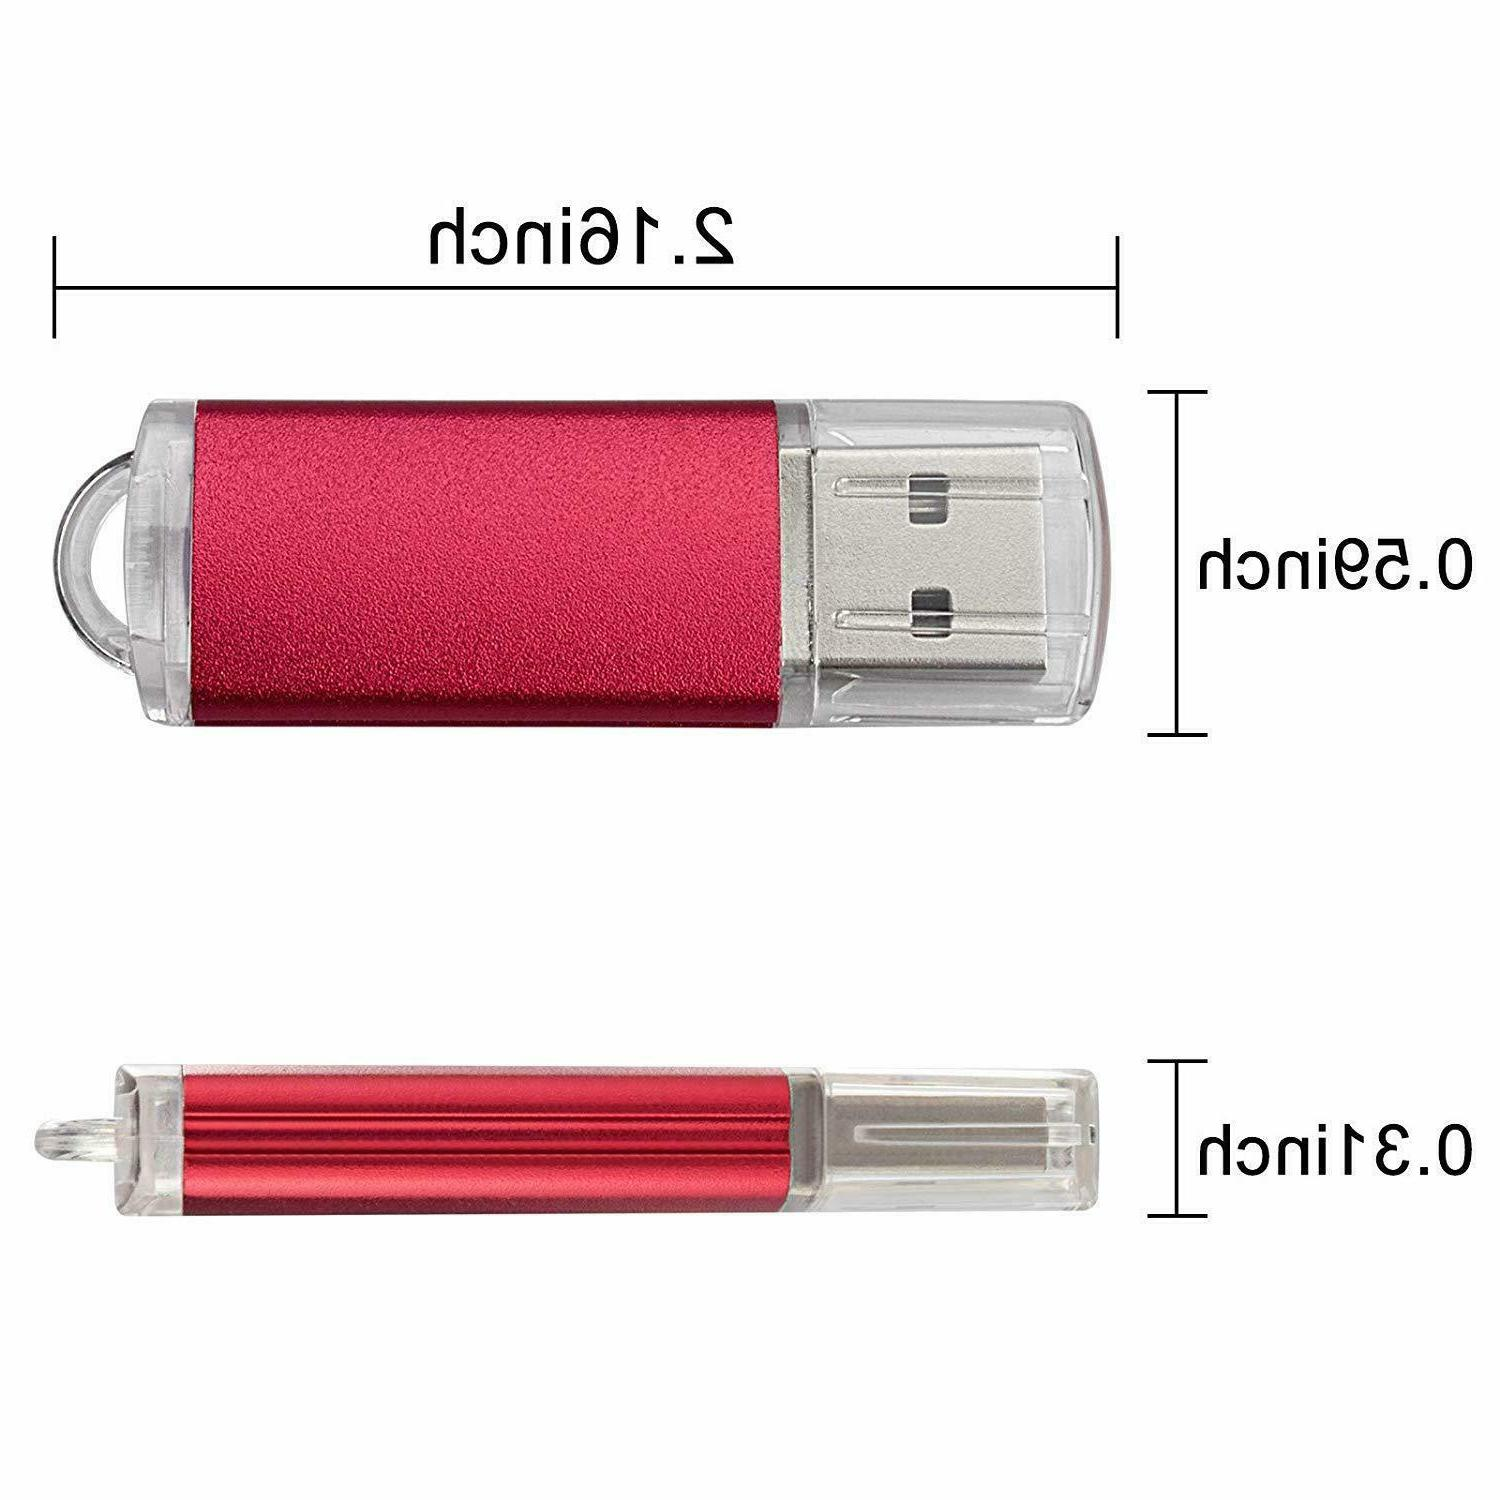 32GB USB 2.0 Flash Drive Stick Pen with Indicator Speed